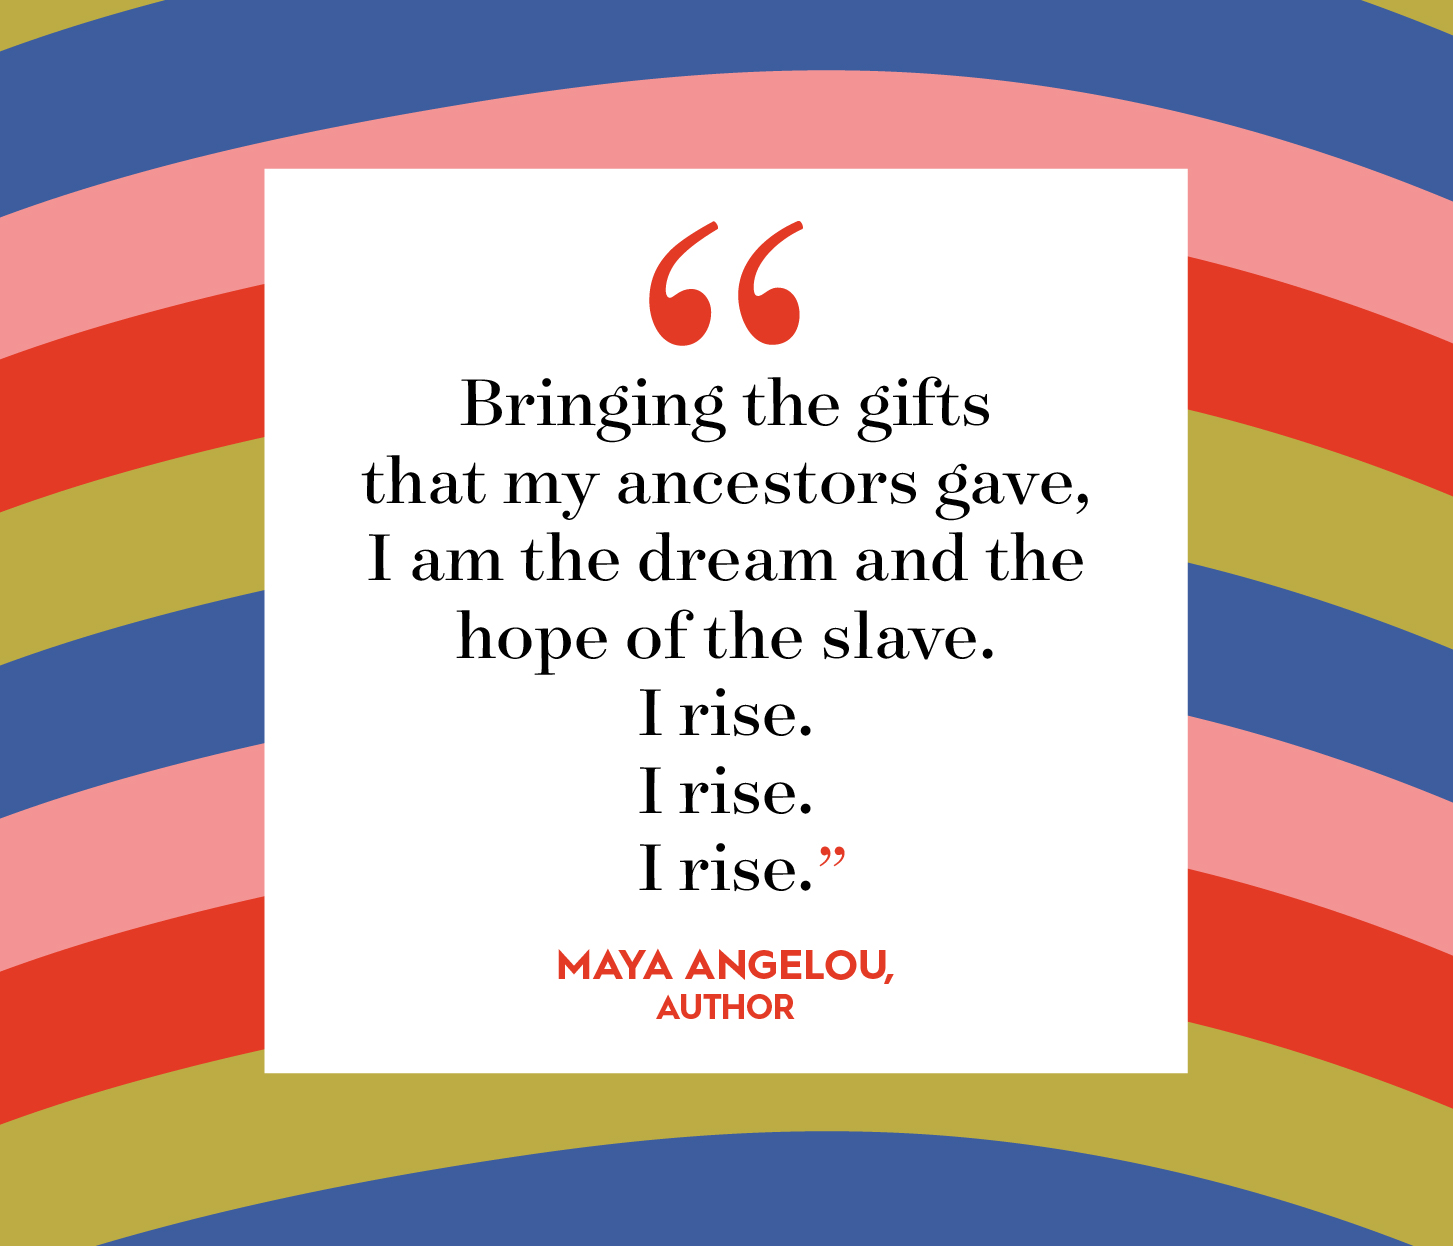 maya angelou quote on multicolor background